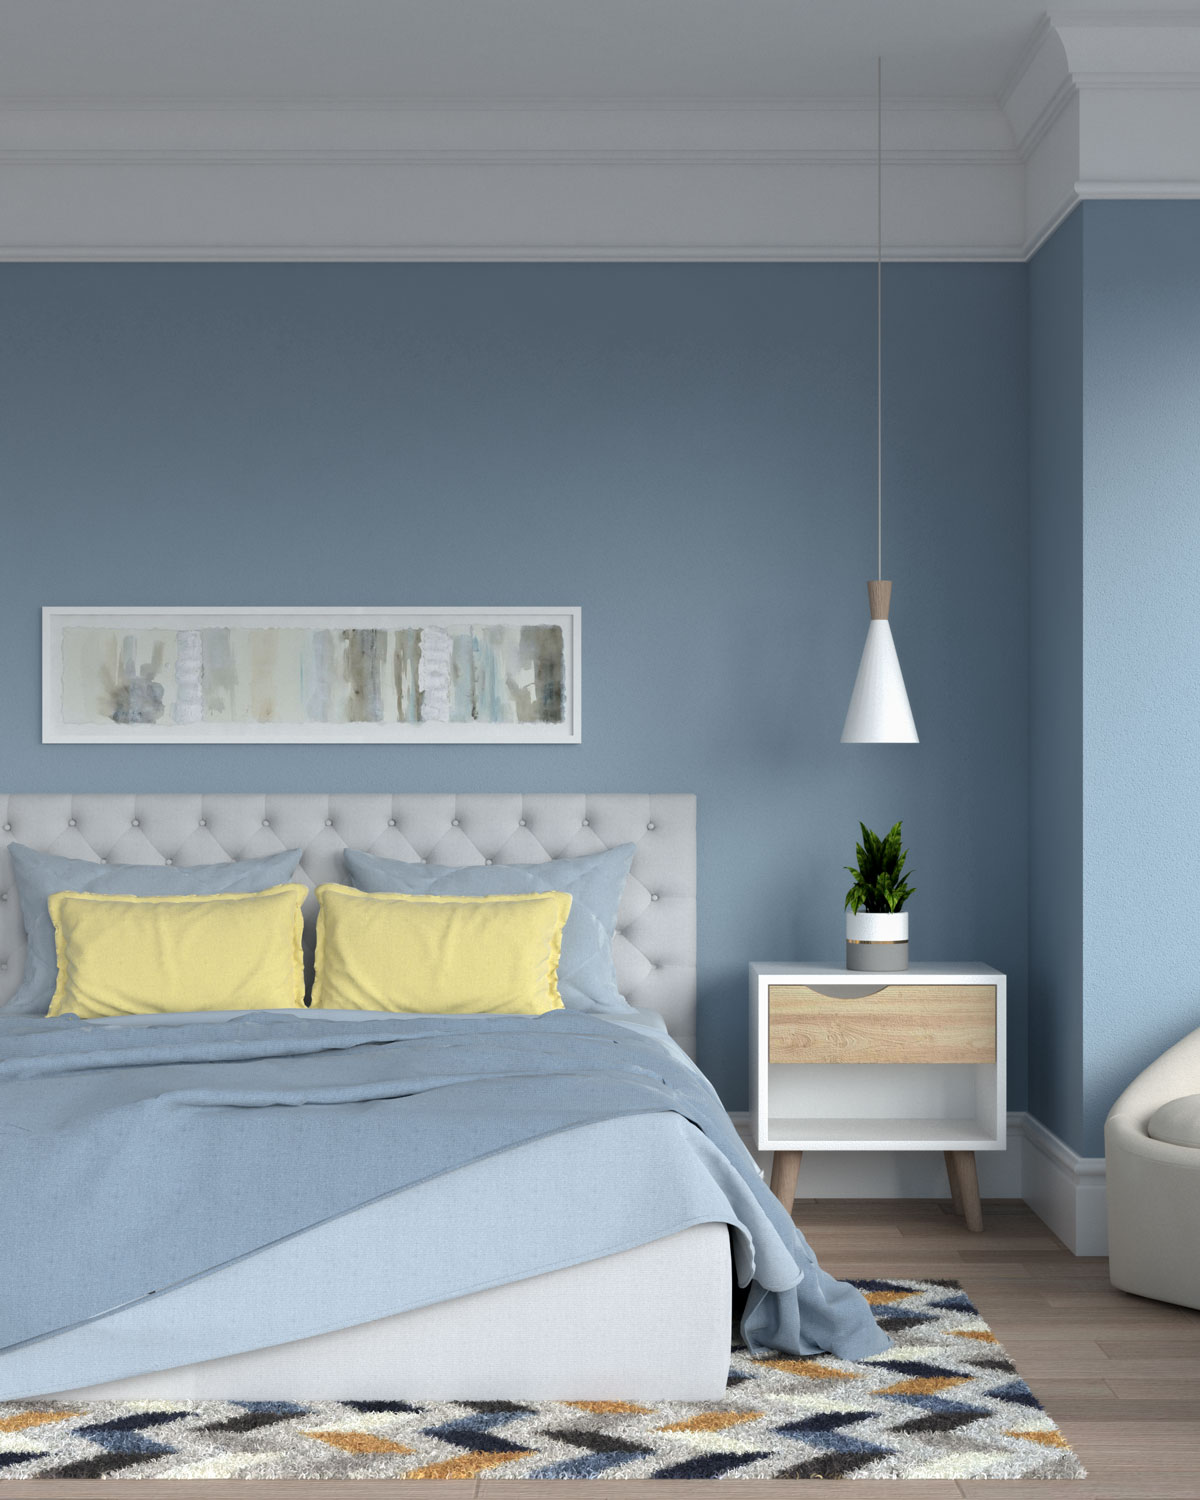 Blue bedroom with yellow accent